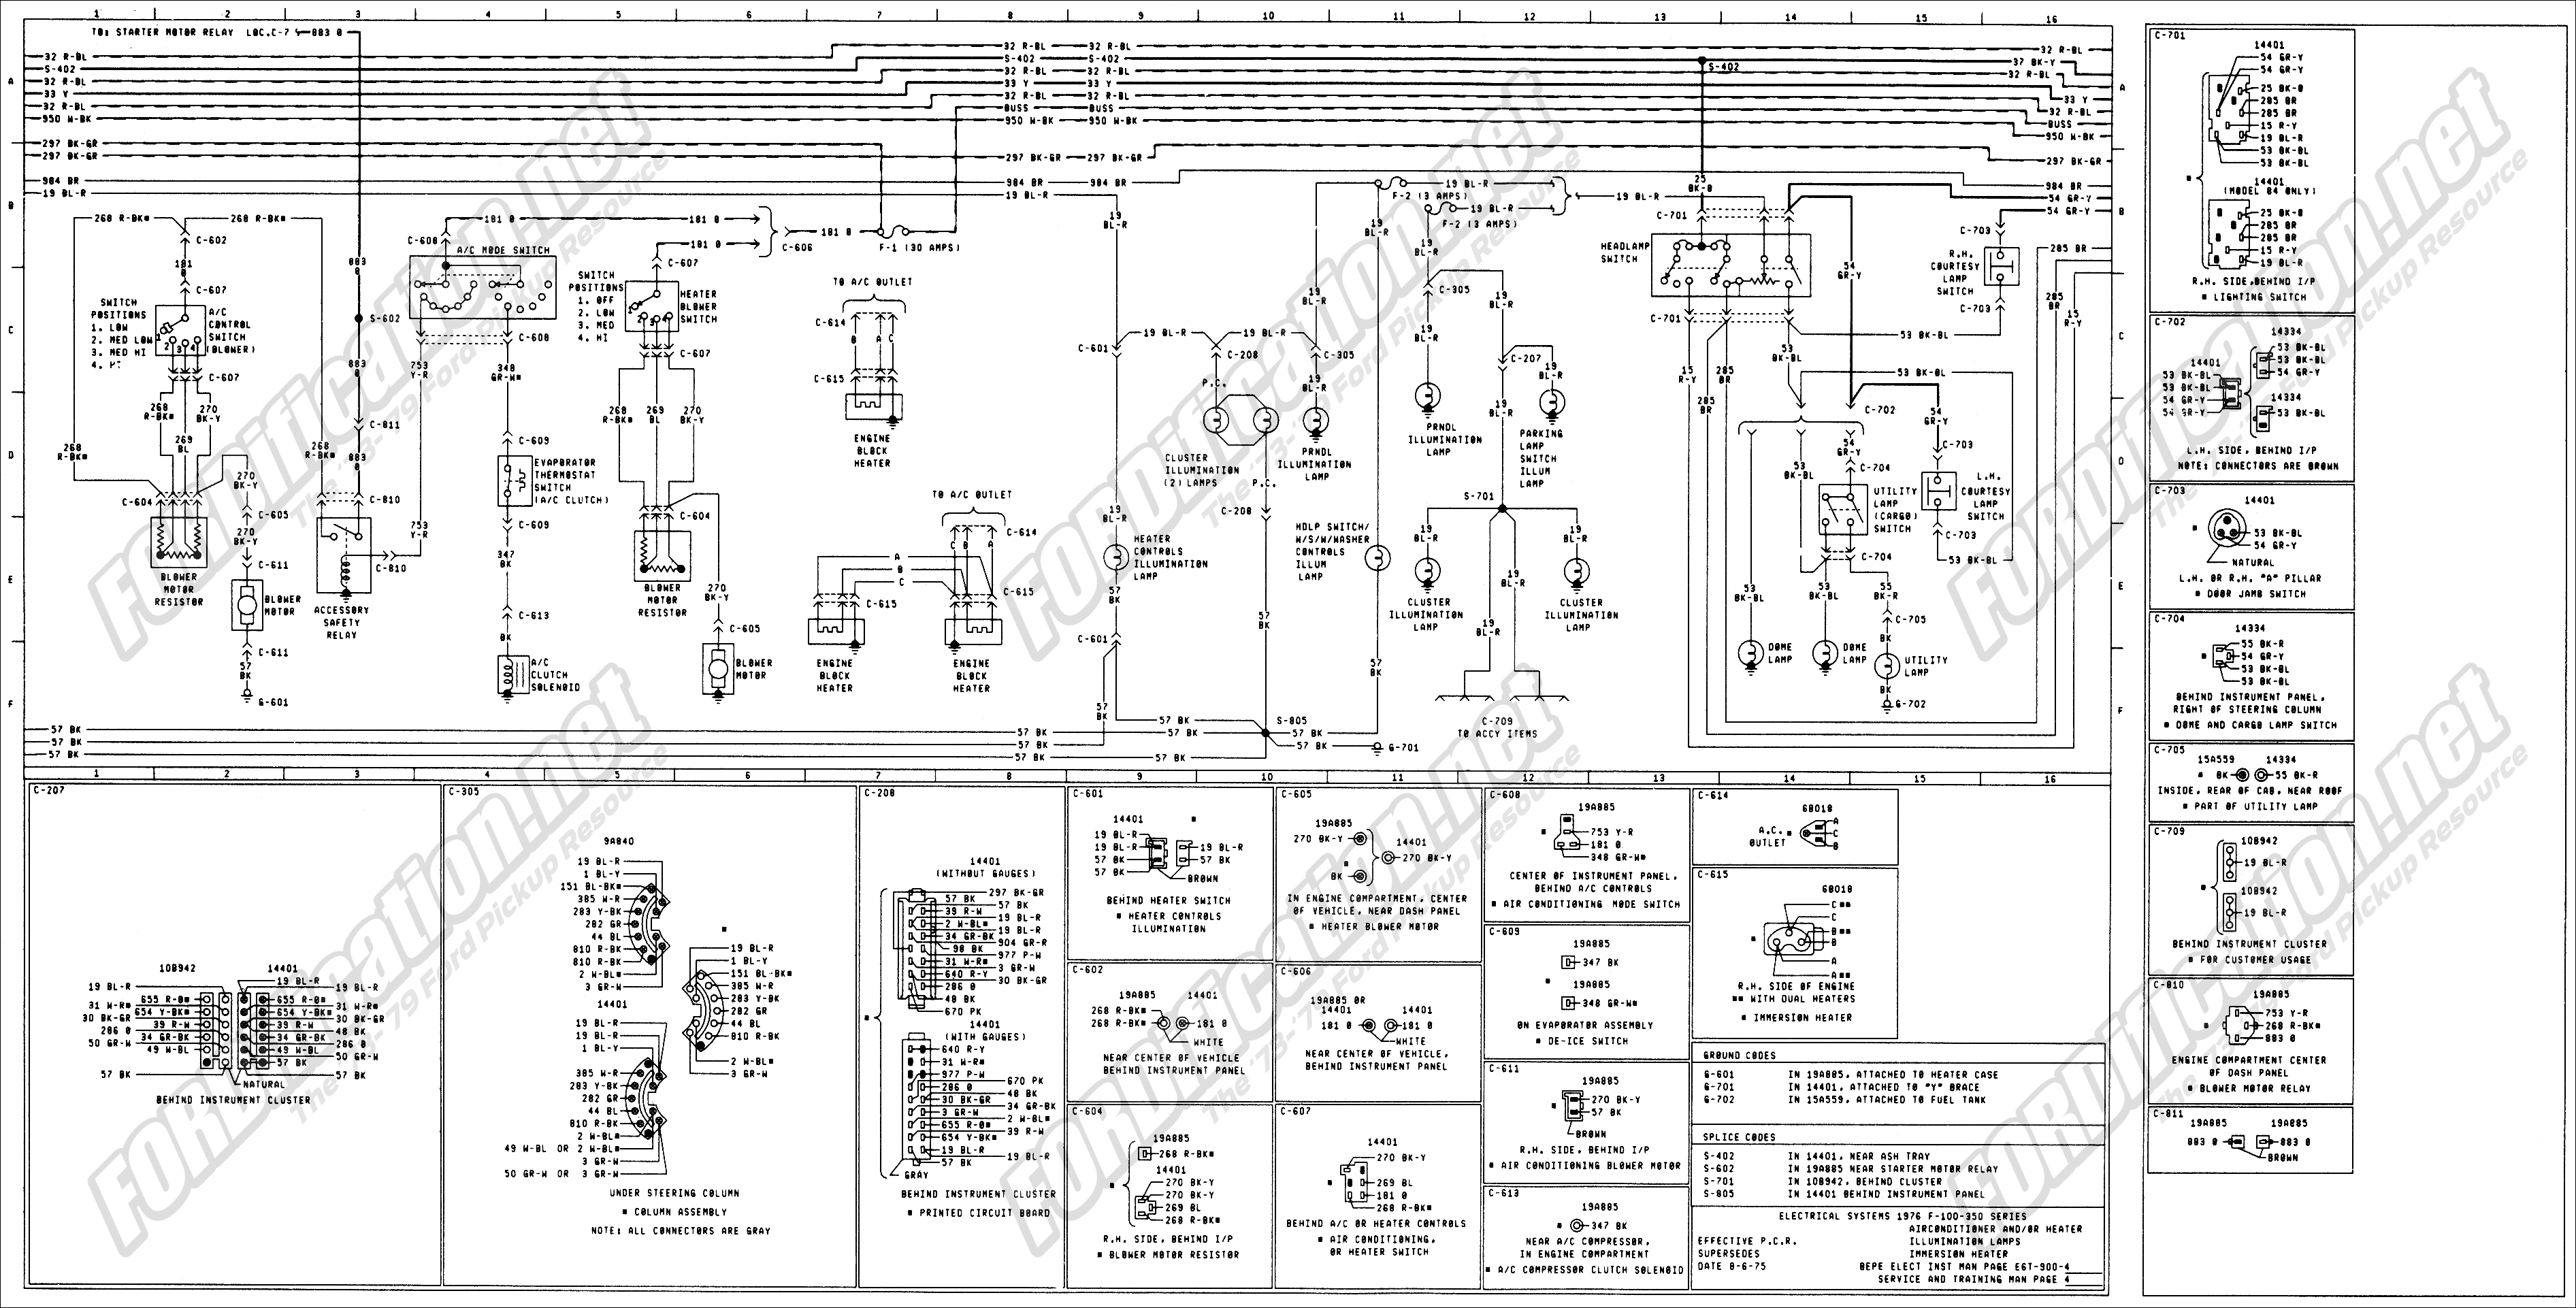 1973 1979 ford truck wiring diagrams schematics fordification net 1999 F150 Wiring Diagram